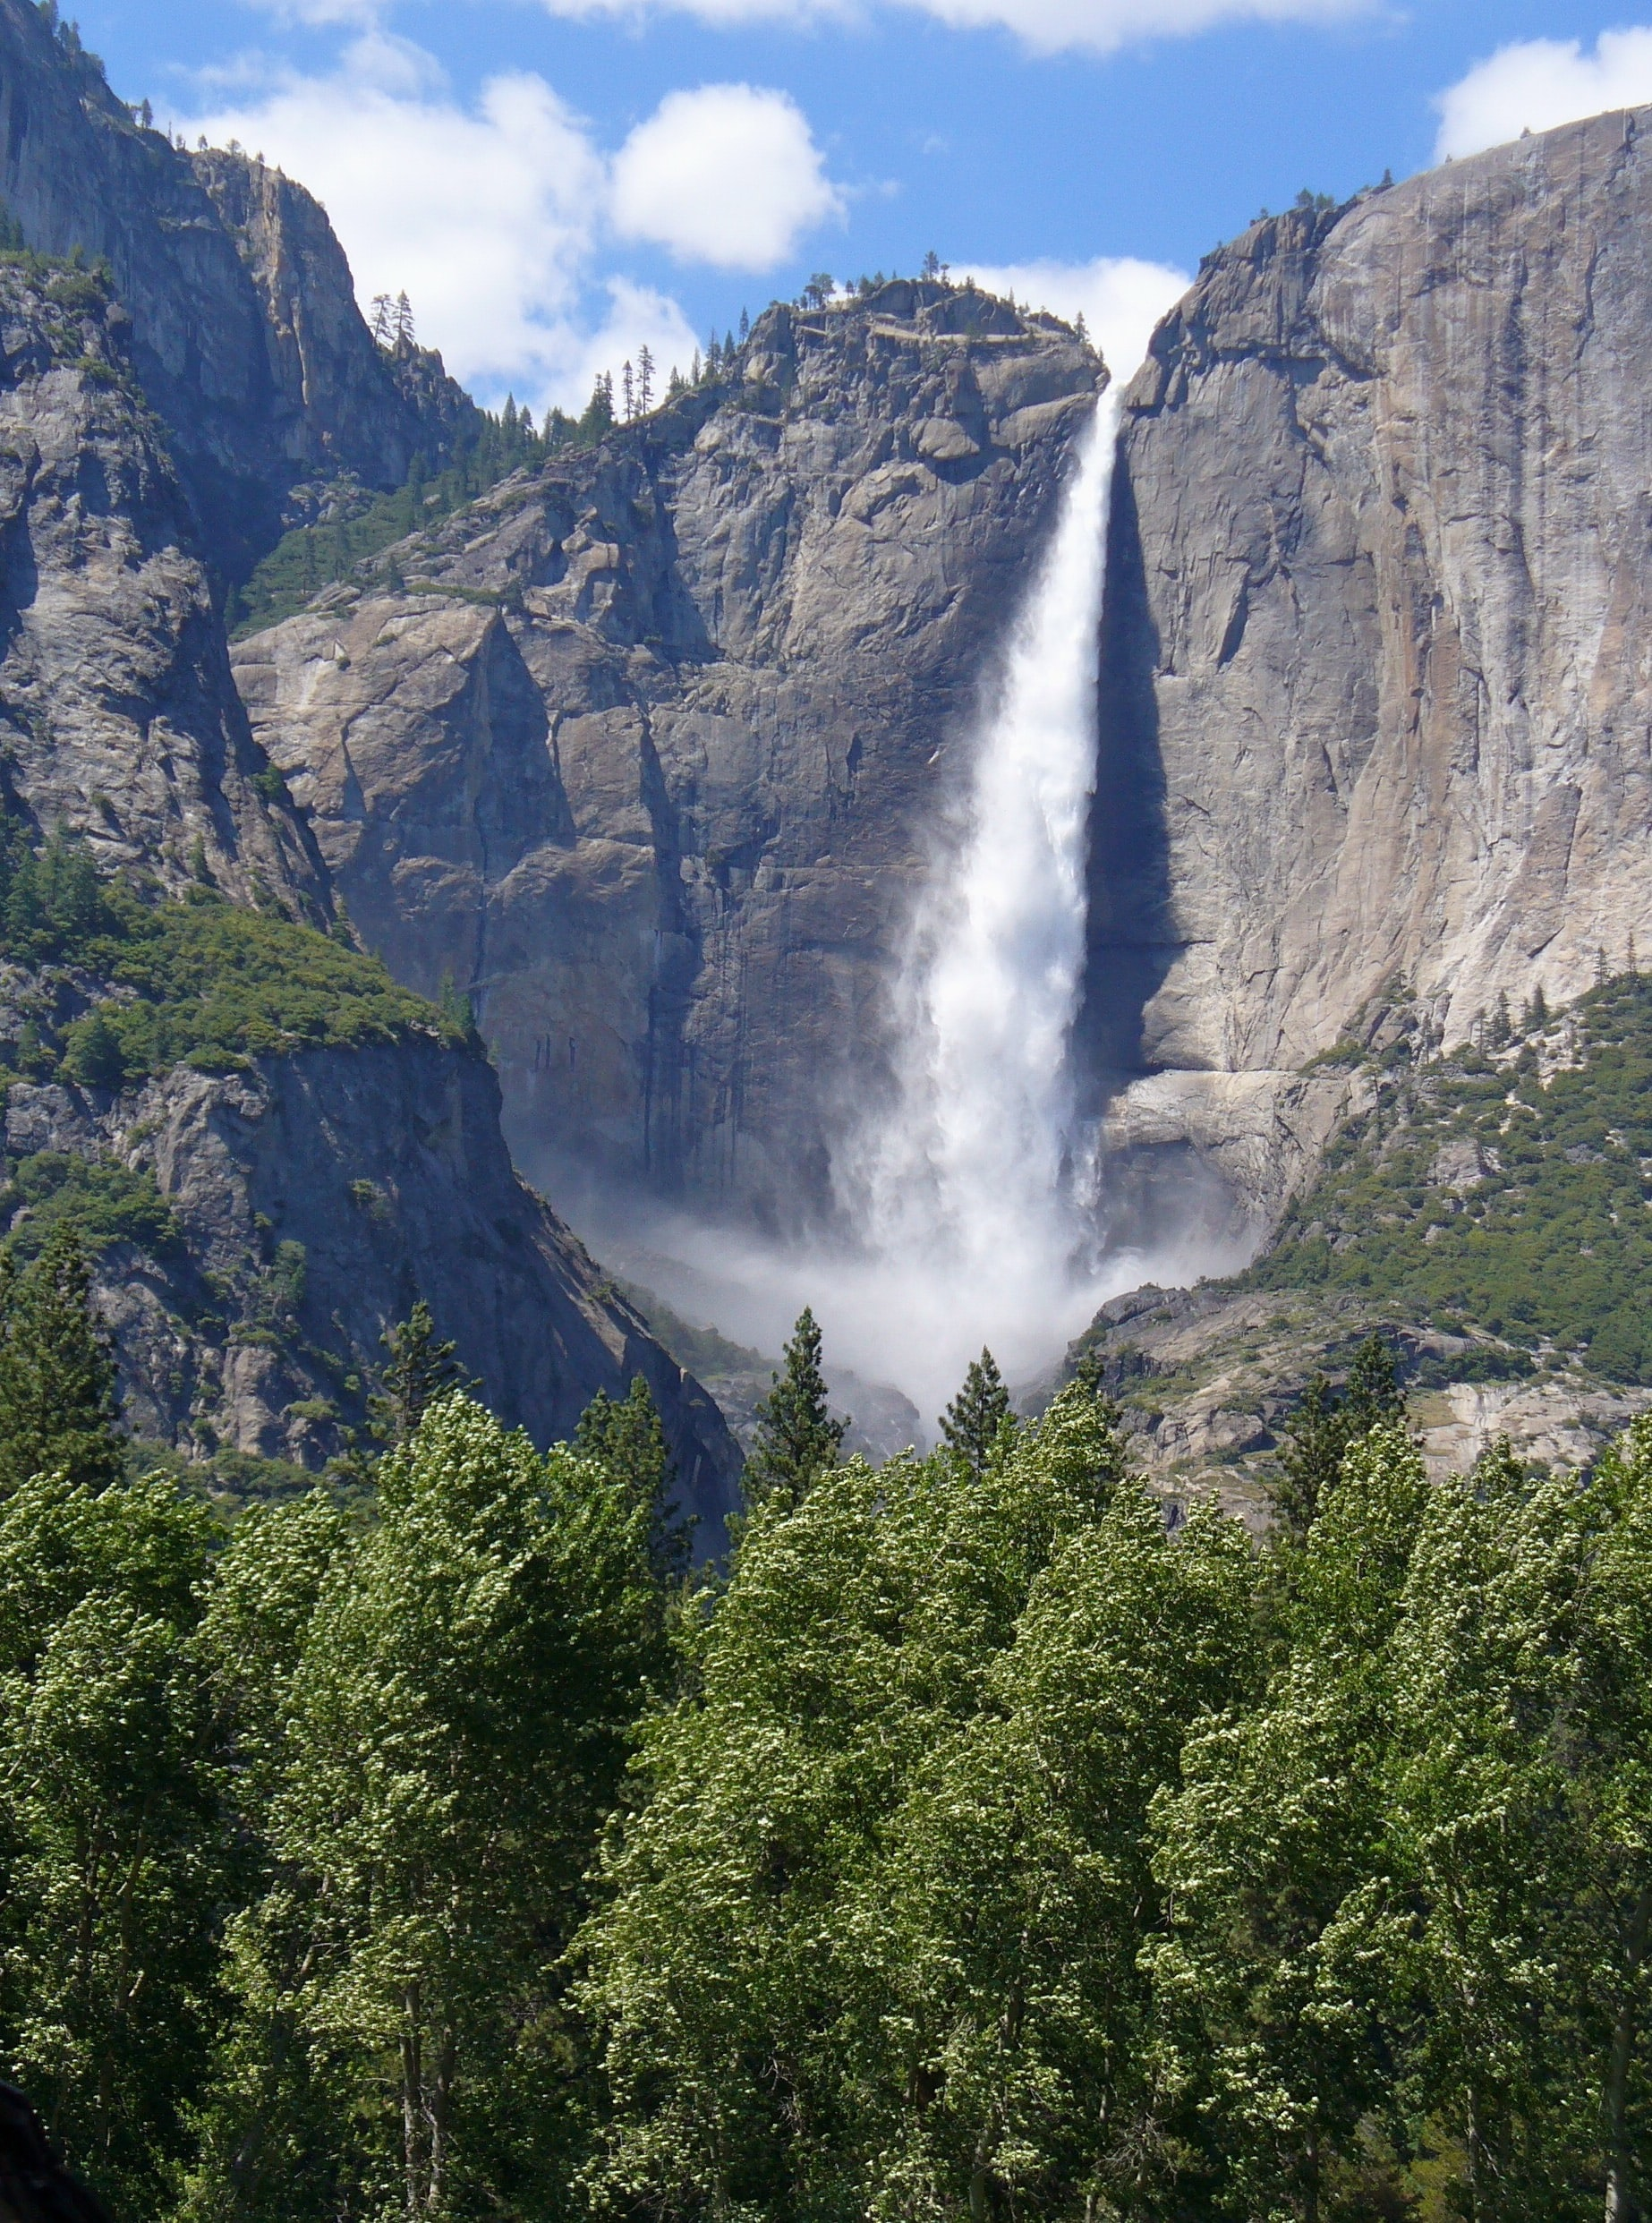 An impressive waterfall tumbling down from a vertical rock face in Yosemite